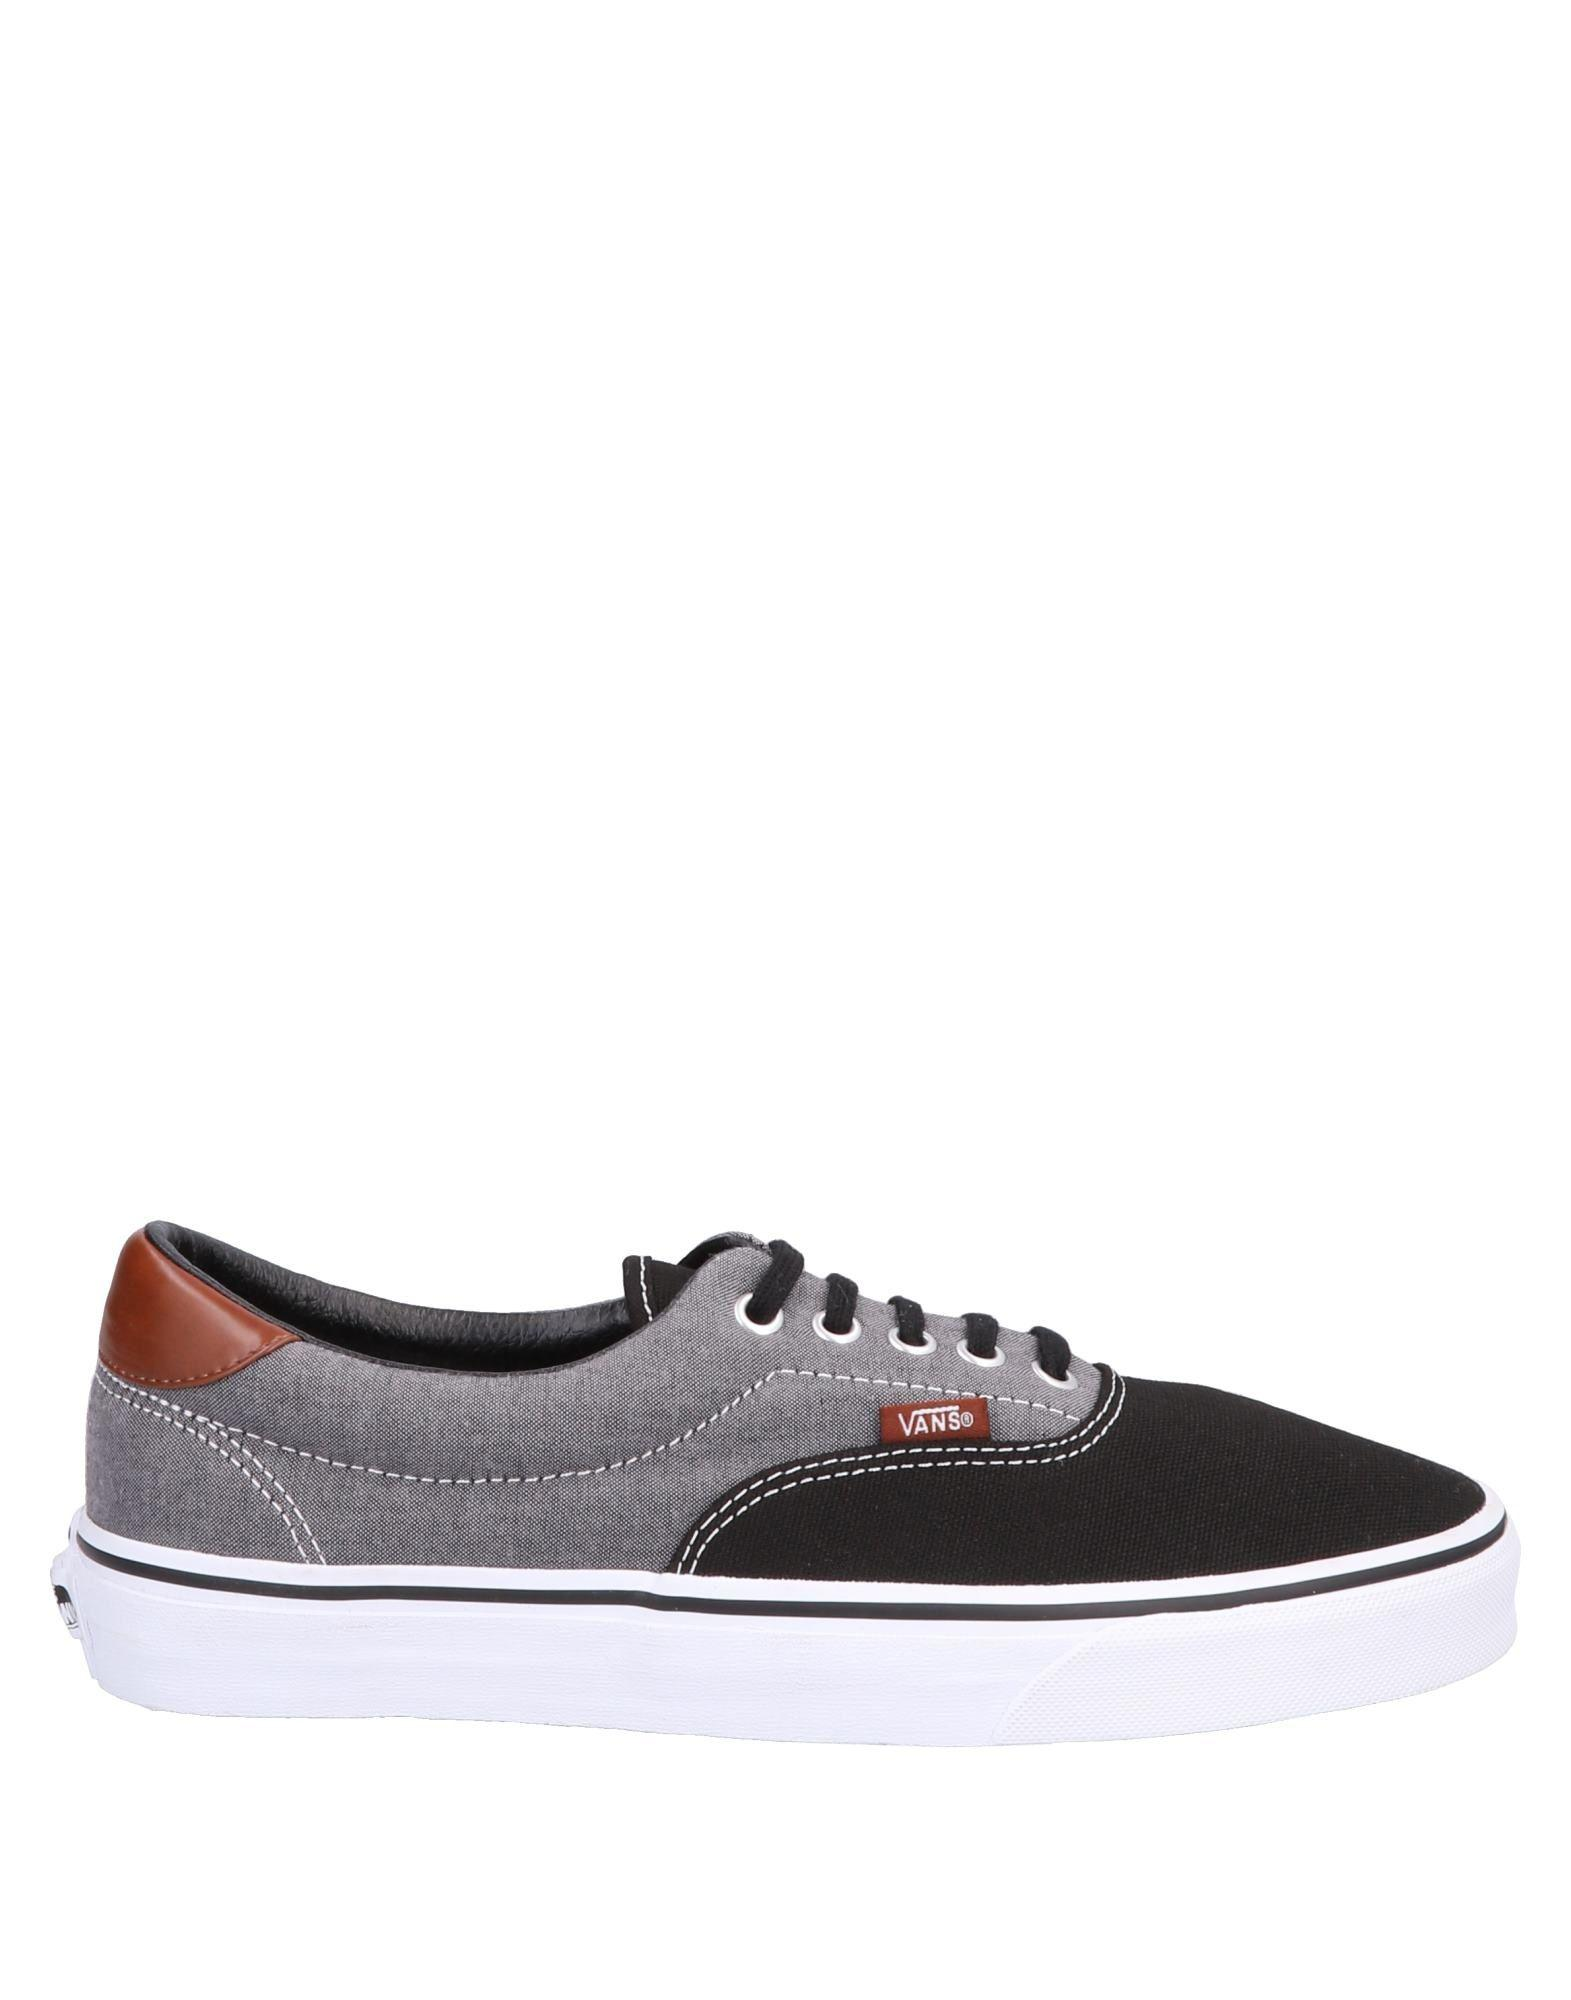 ca4b49c056aea2 Lyst - Vans Low-tops   Sneakers in Black for Men